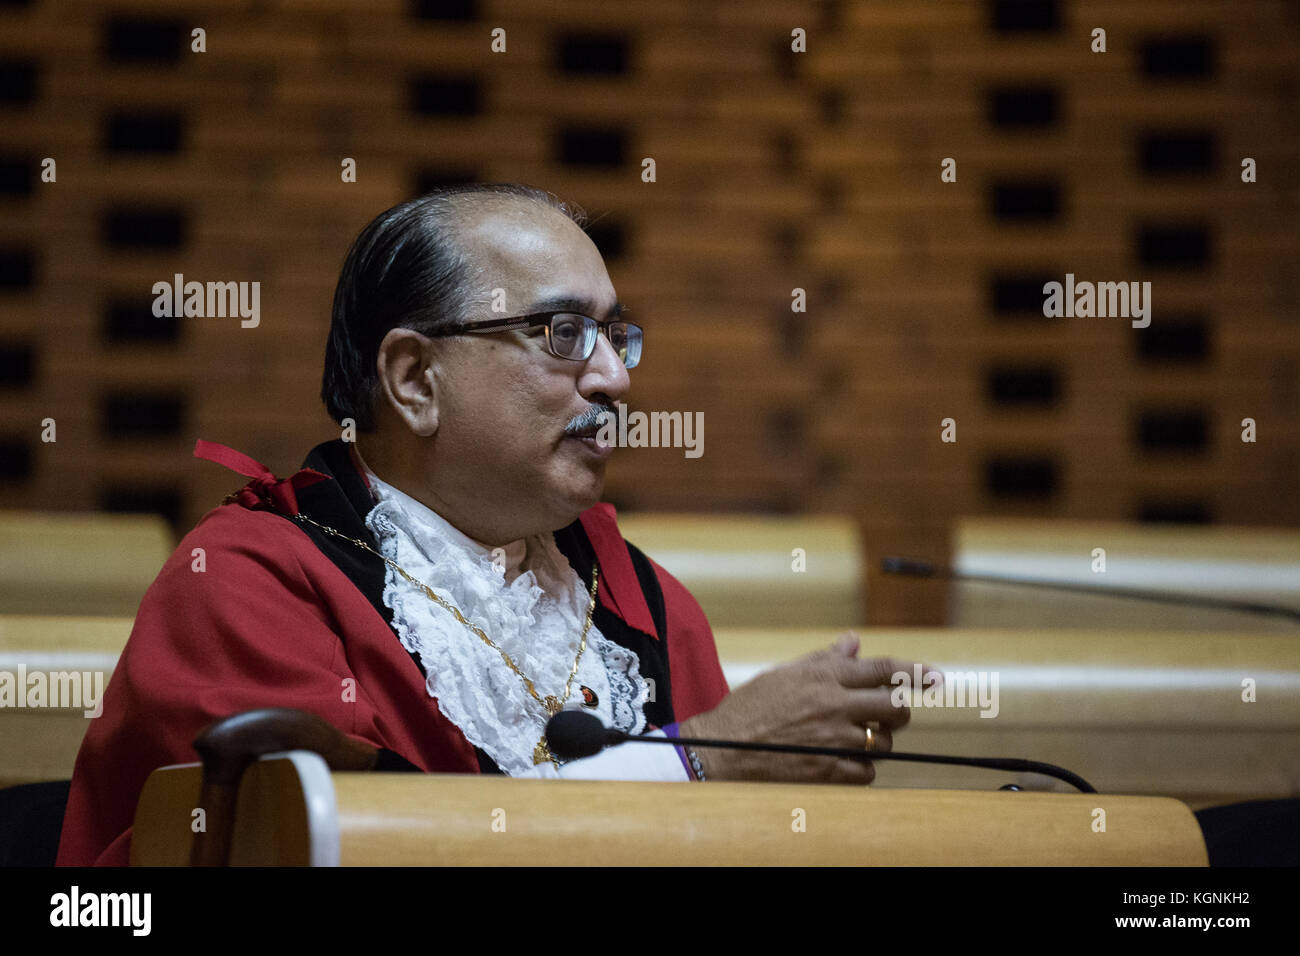 Hounslow, UK. 9th November, 2017. Deputy Mayor Cllr. Mukesh Malhotra asks a question following the SACRE lecture - Stock Image